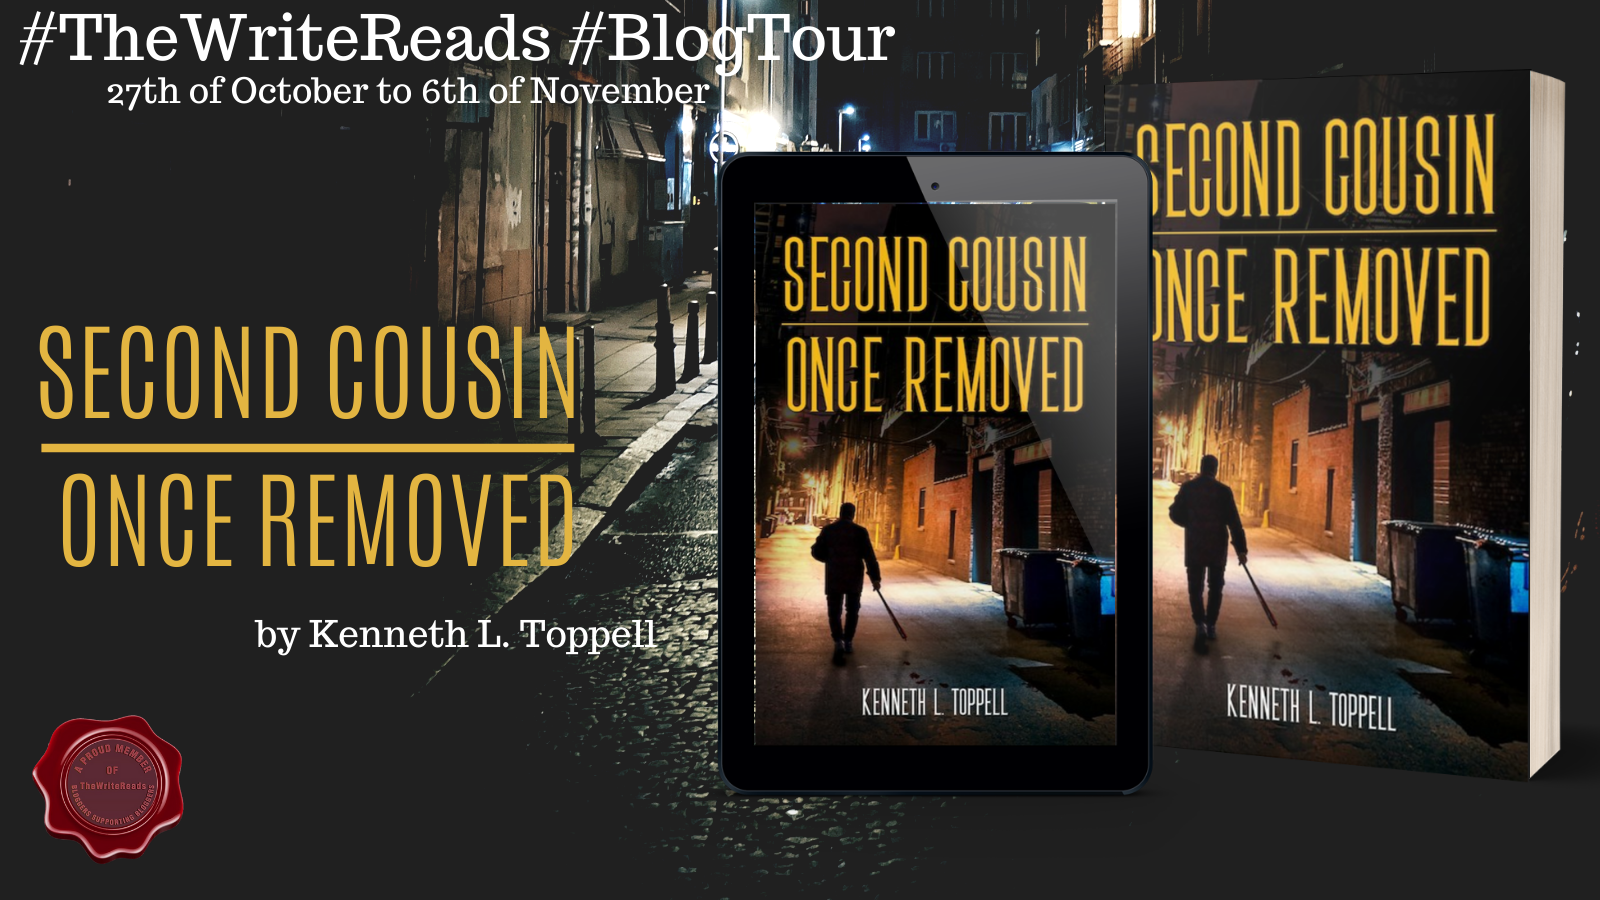 Second Cousin Once Removed Blogtour Banner